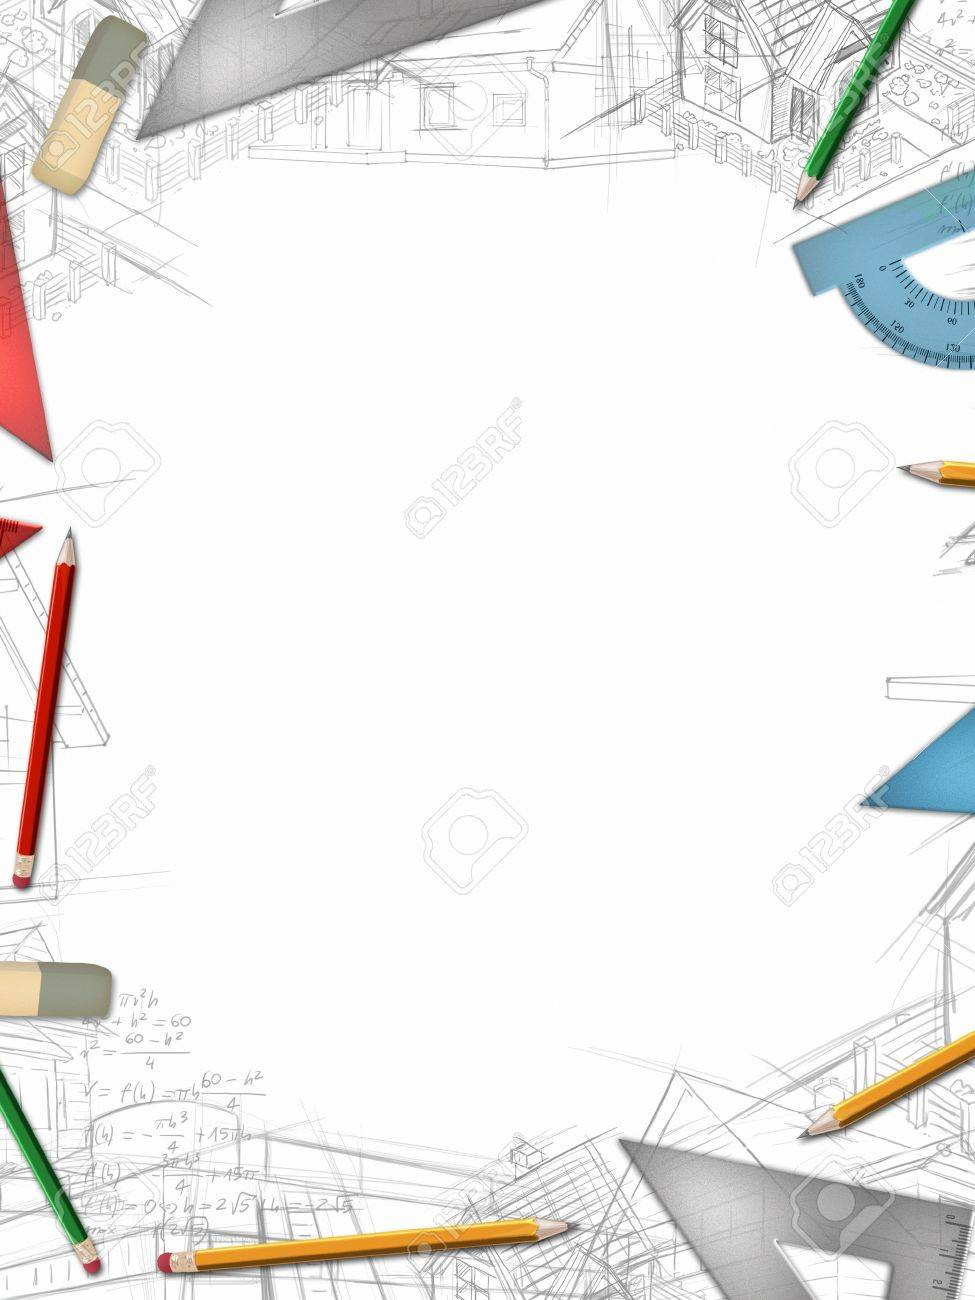 office drawing tools. Architectural Vertical Background With Office Tools And Drawings Illustration Stock - 32381477 Drawing U